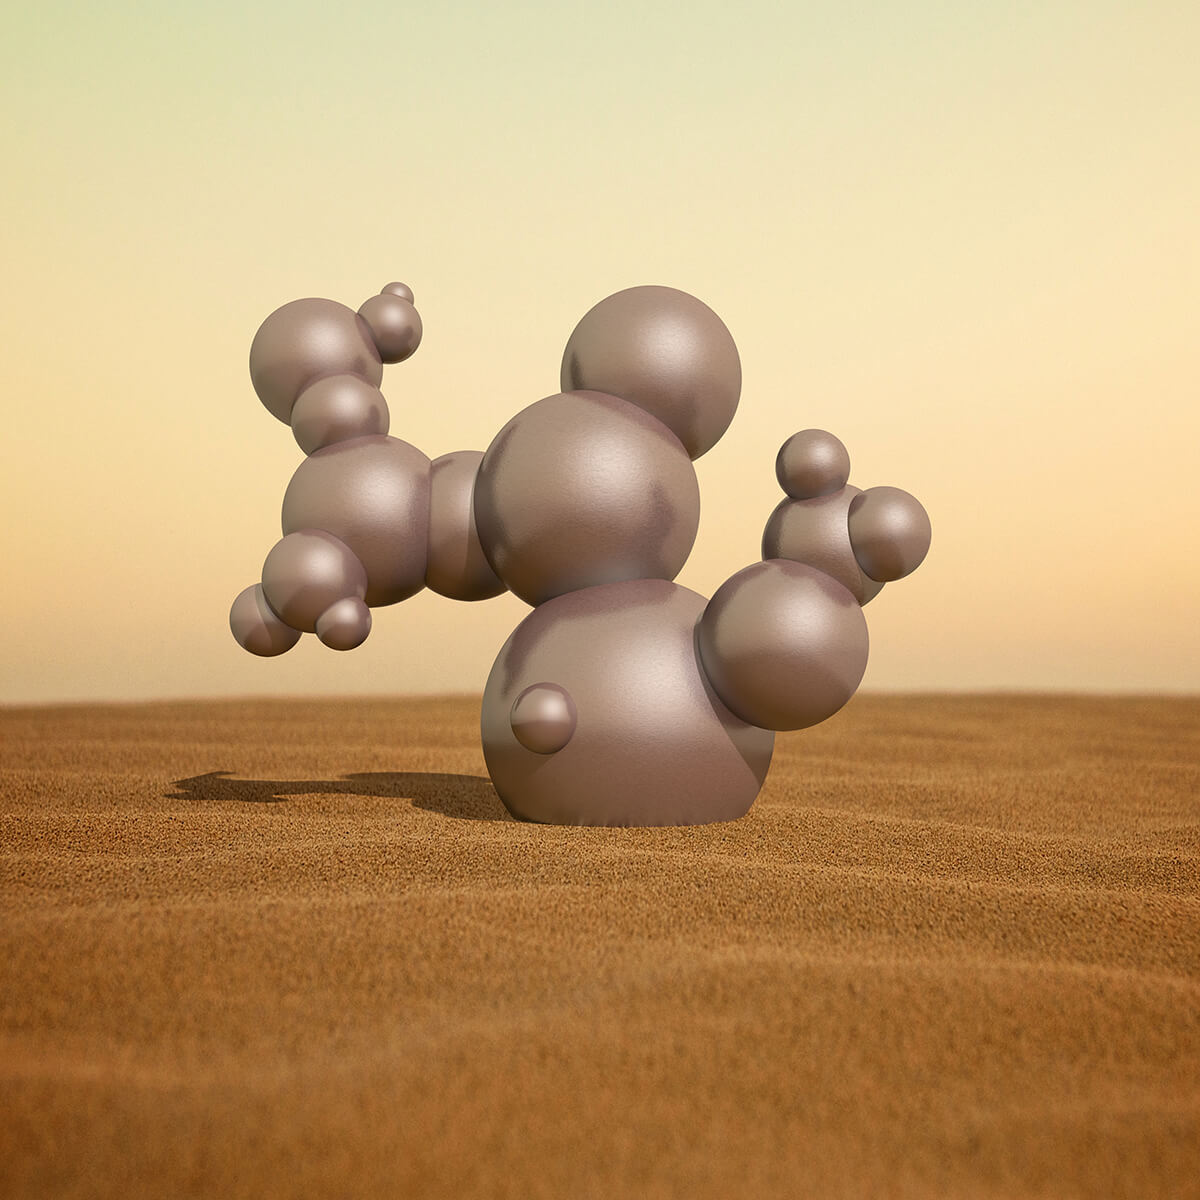 3D render of a cactus like object made of metal spheres in the desert